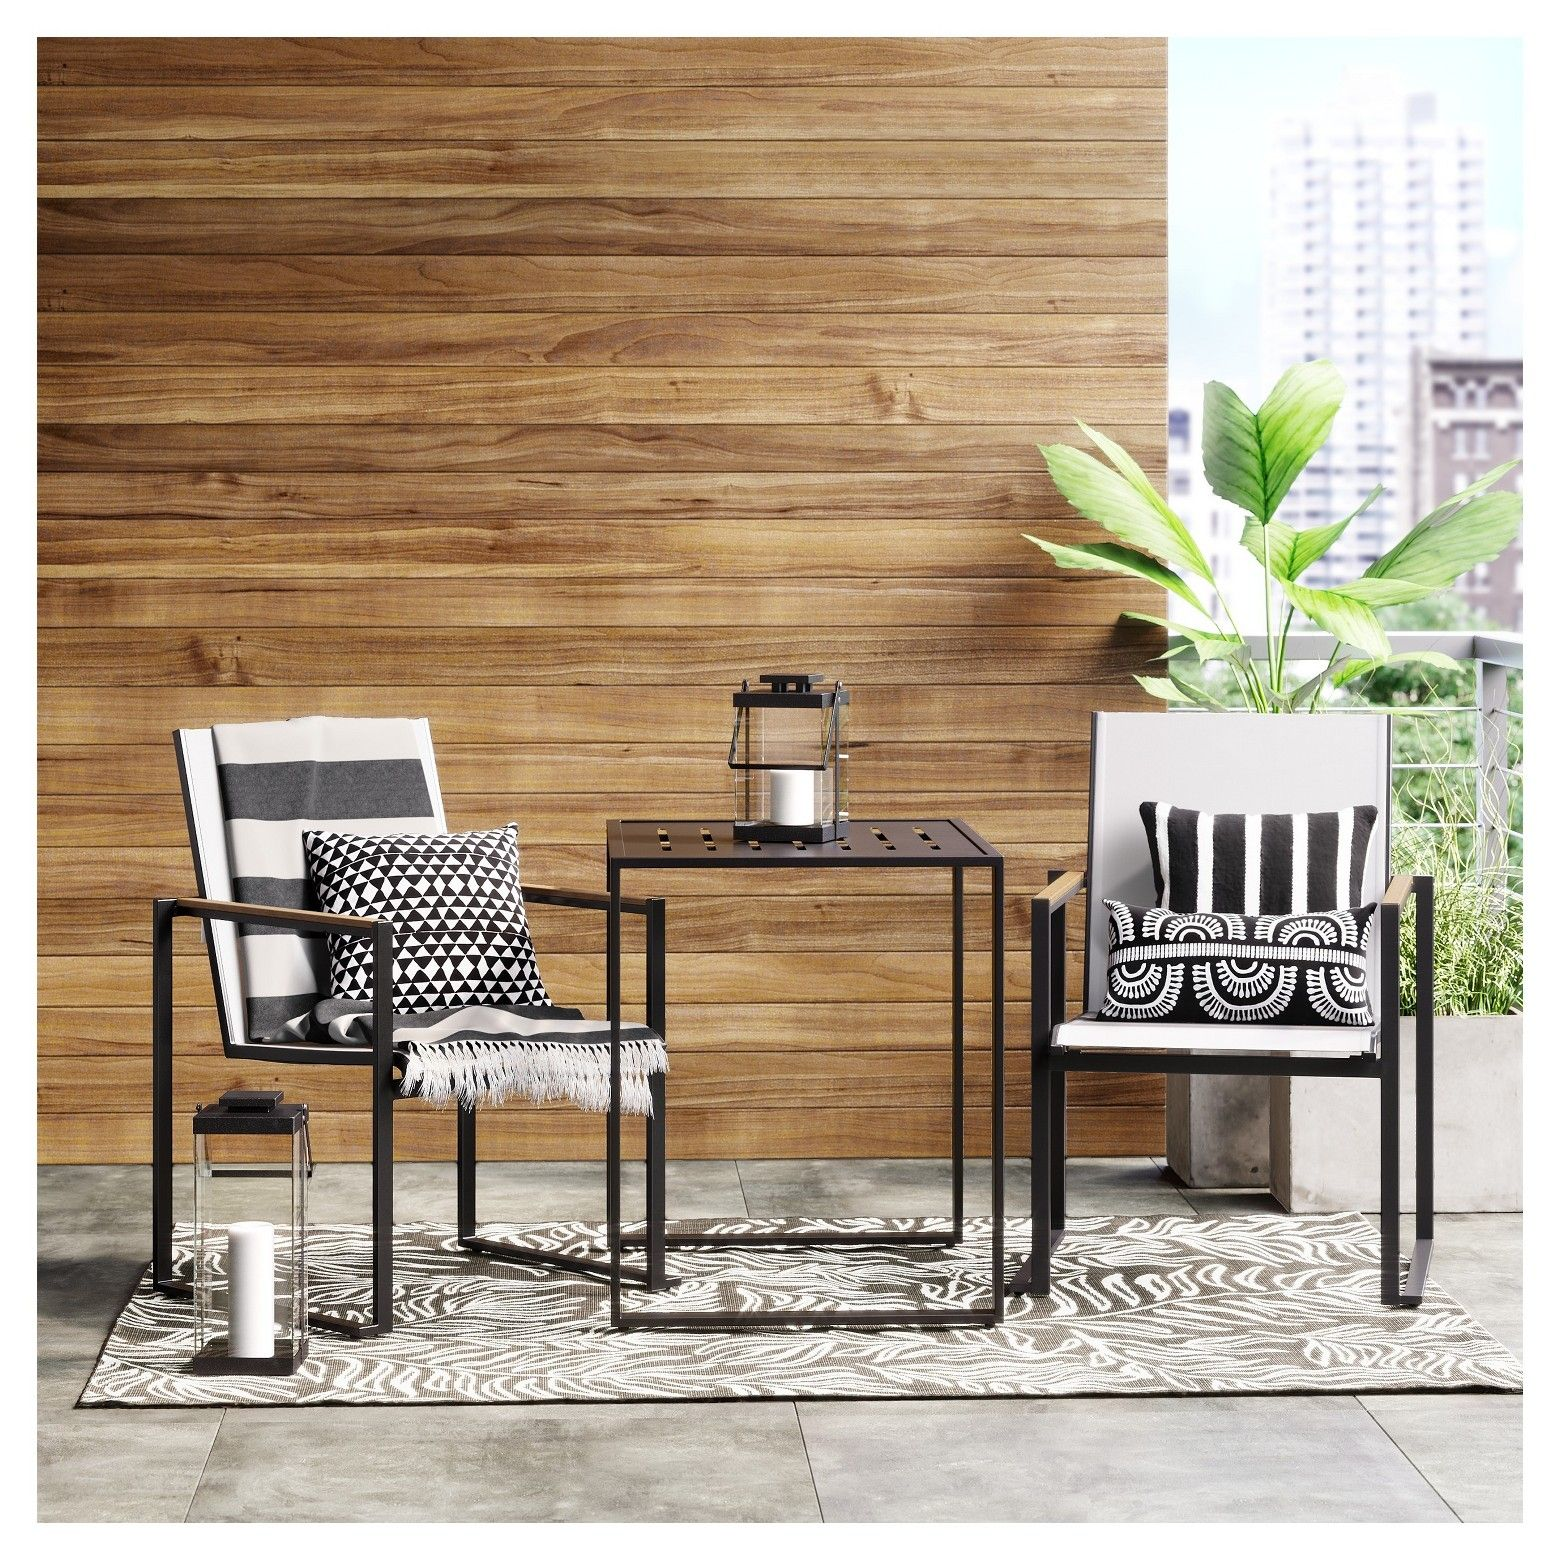 Shop target for small space patio furniture you will love at great low prices free shipping on orders of 35 or free same day pick up in store